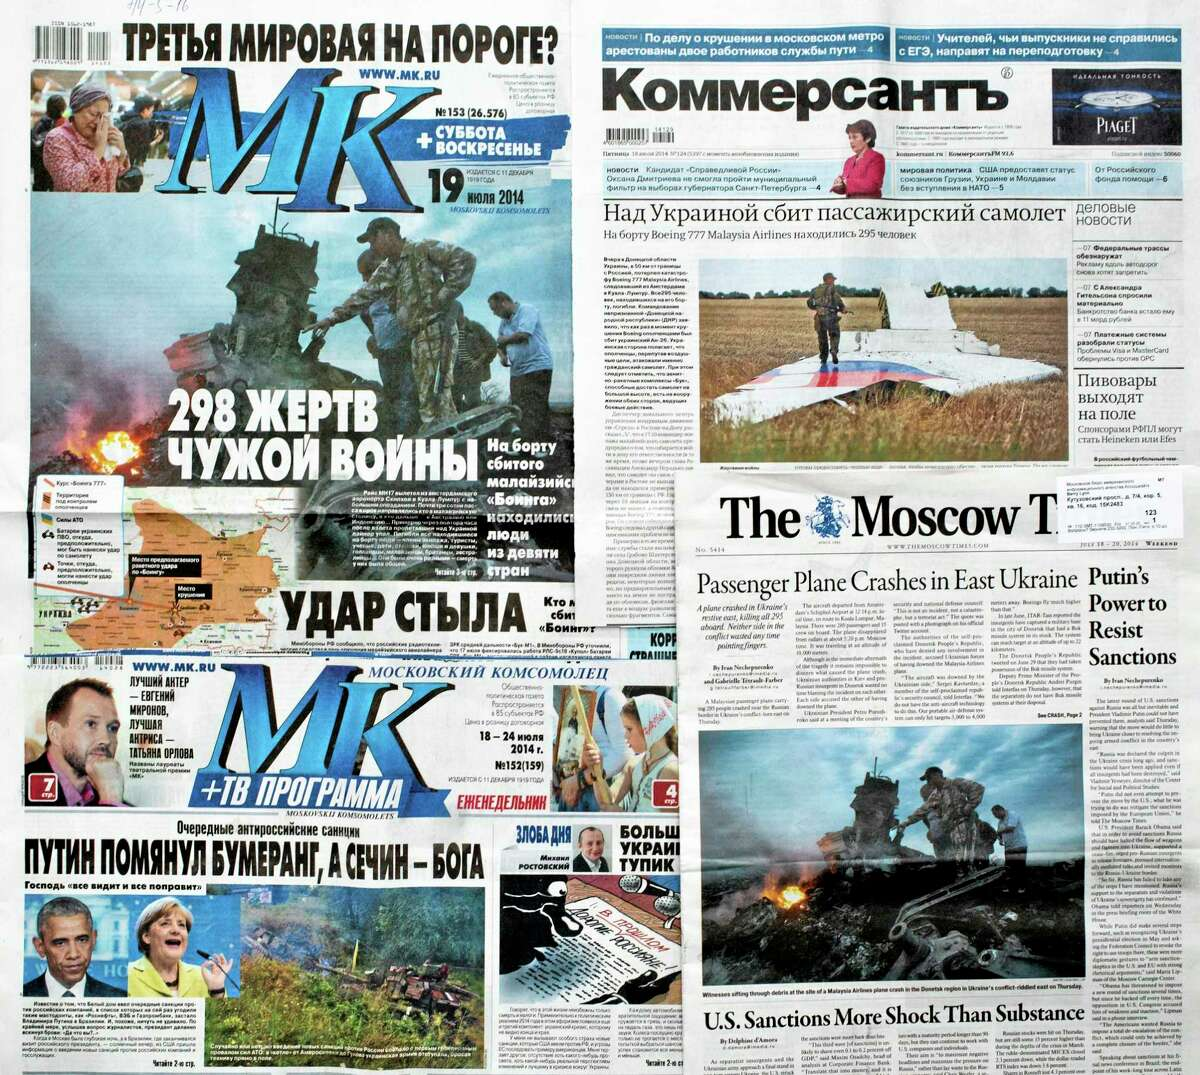 """FILE - This June 20, 2014 file photo, shows a combination of images of Russian nationwide weekend dailies' front pages on downed Malaysia Airlines Flight 17 in Moscow Russia, some of them reading """"298 Victims of Someone Else's War,"""" and """"Kick From Behind."""" An assassination attempt against Russian President Vladimir Putin. A desperate ploy to draw the West into the battle for Ukraineís east. A botched mission to commit mass-murder against Russian citizens. Russian news consumers are getting plenty of explanations for the downing of Malaysian Airlines Flight 17, which killed 298 people. While they vary wildly in content, they share one thing in common: All point the finger at Ukraine. None admits the possibility that Russia may bear responsibility. (AP Photo/Alexander Zemlianichenko, File)"""